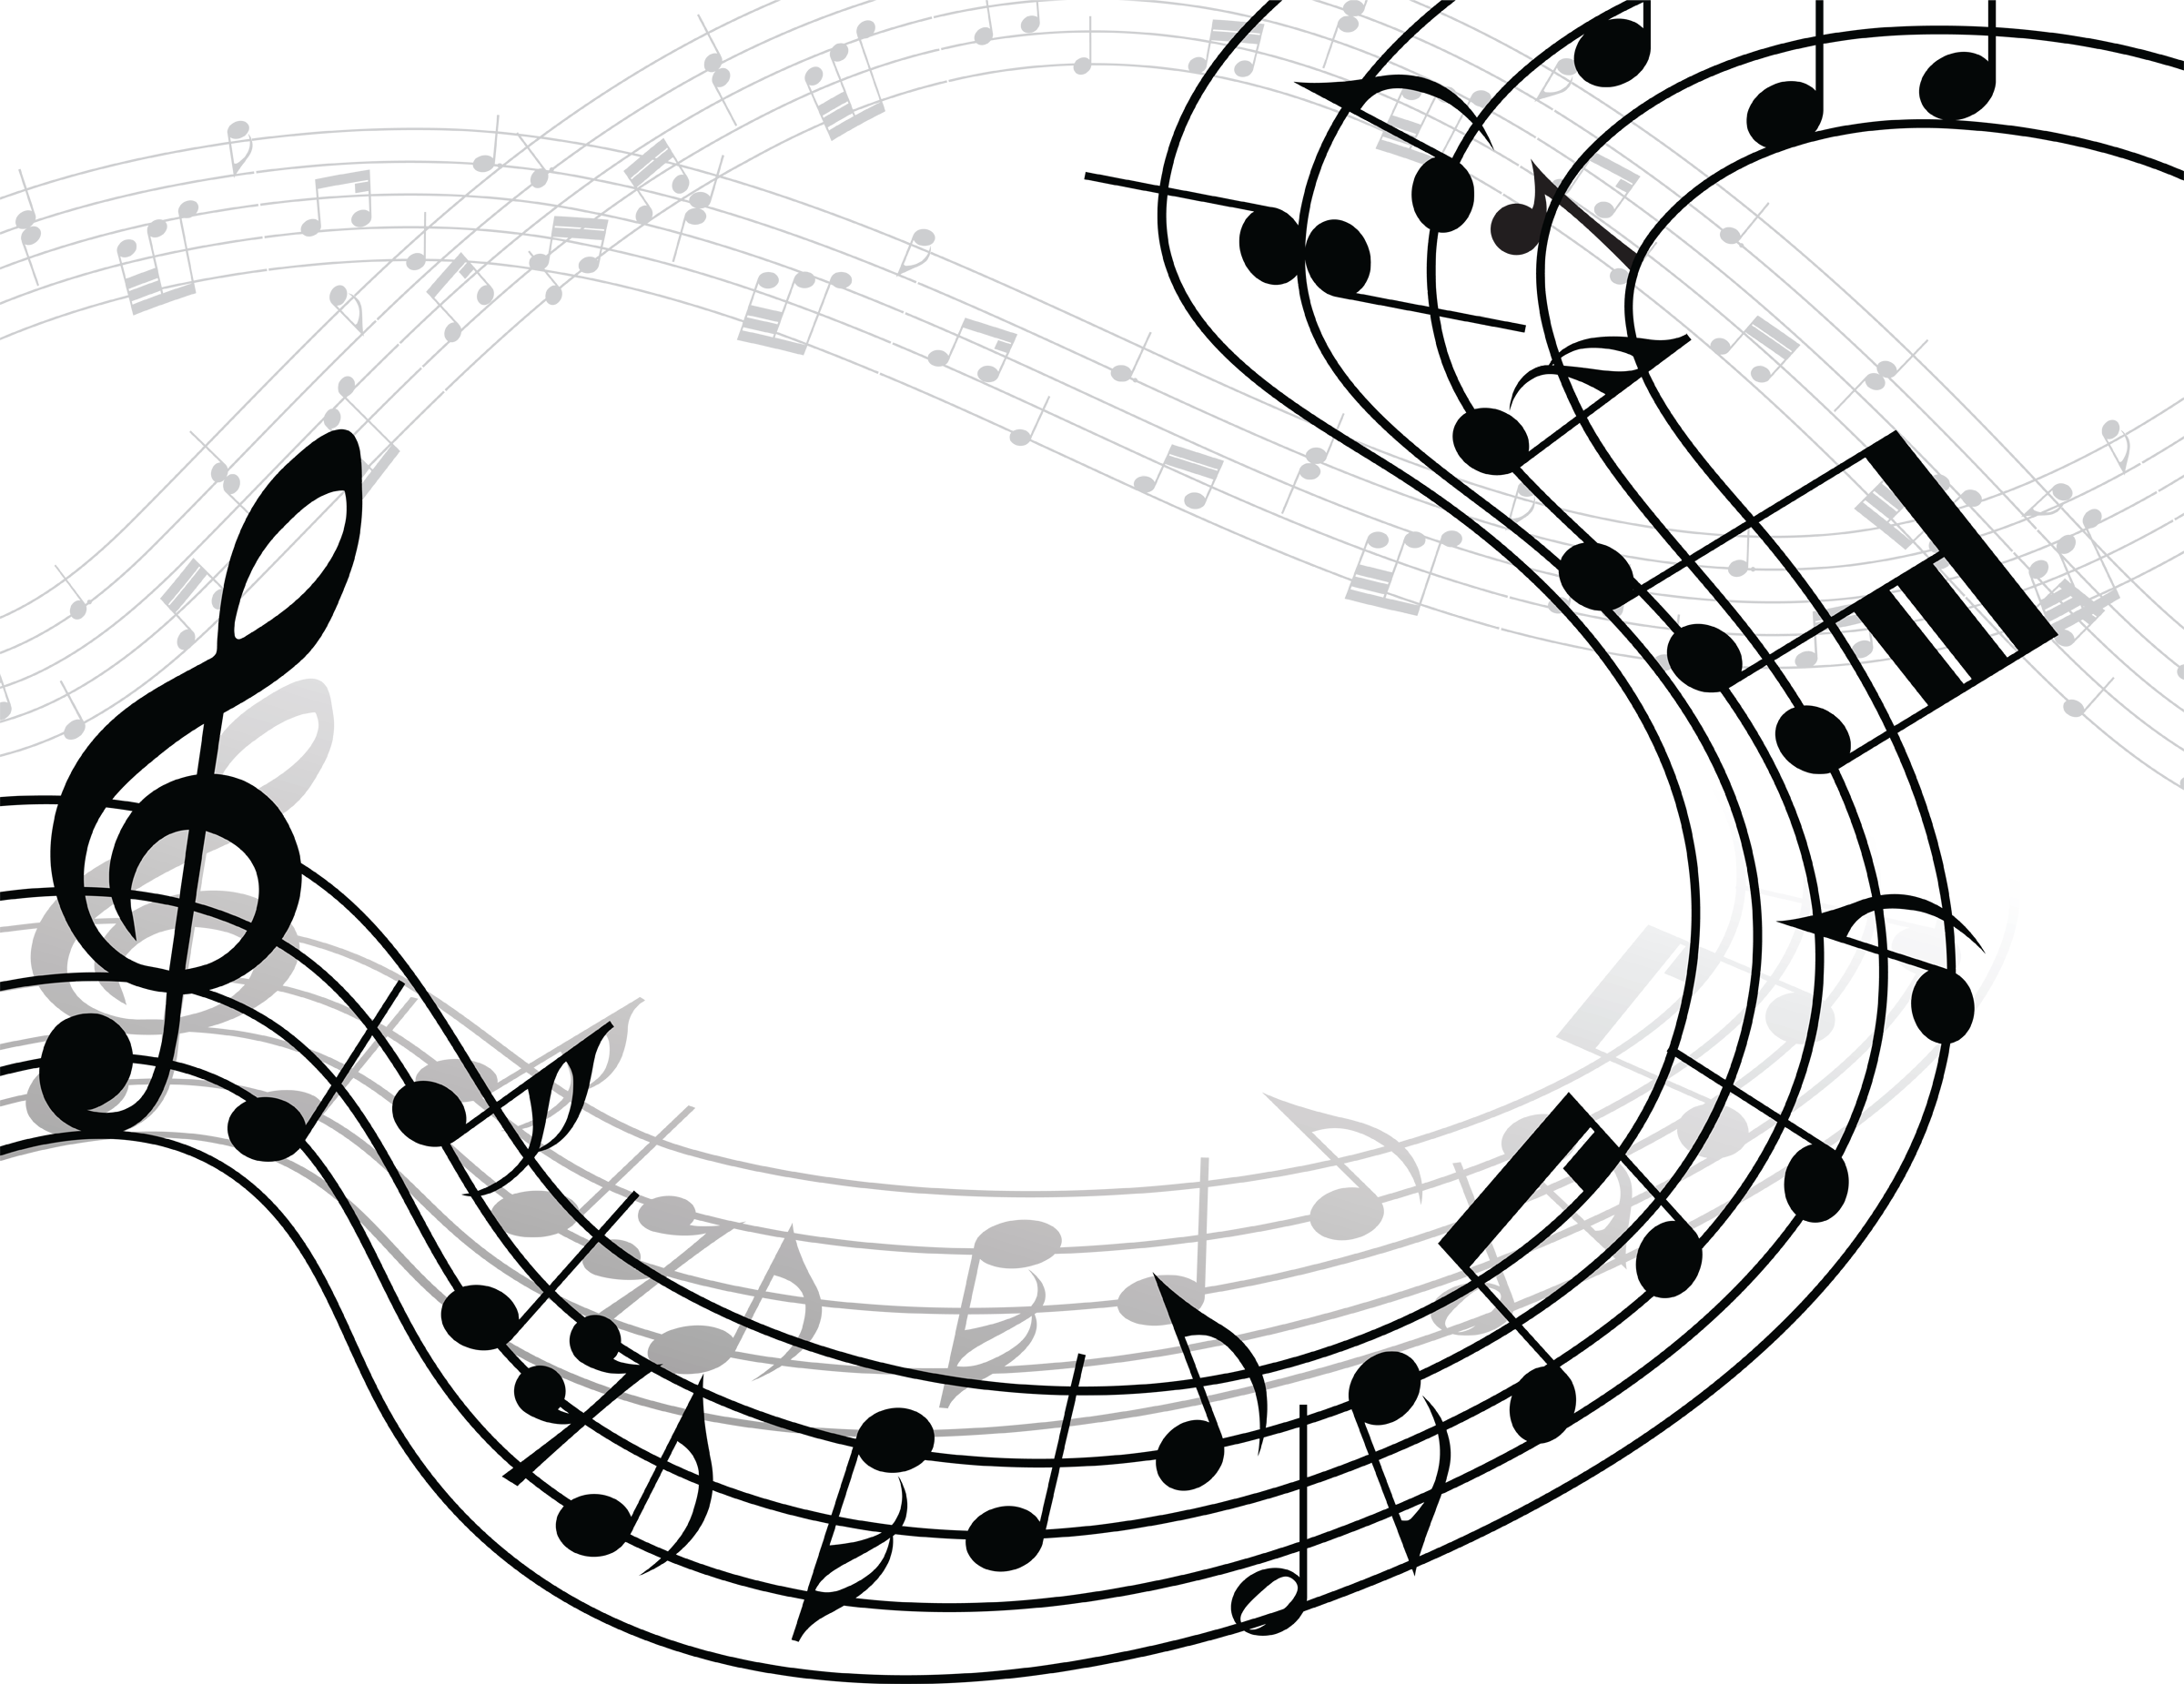 Music PNG Transparent Image - Music PNG